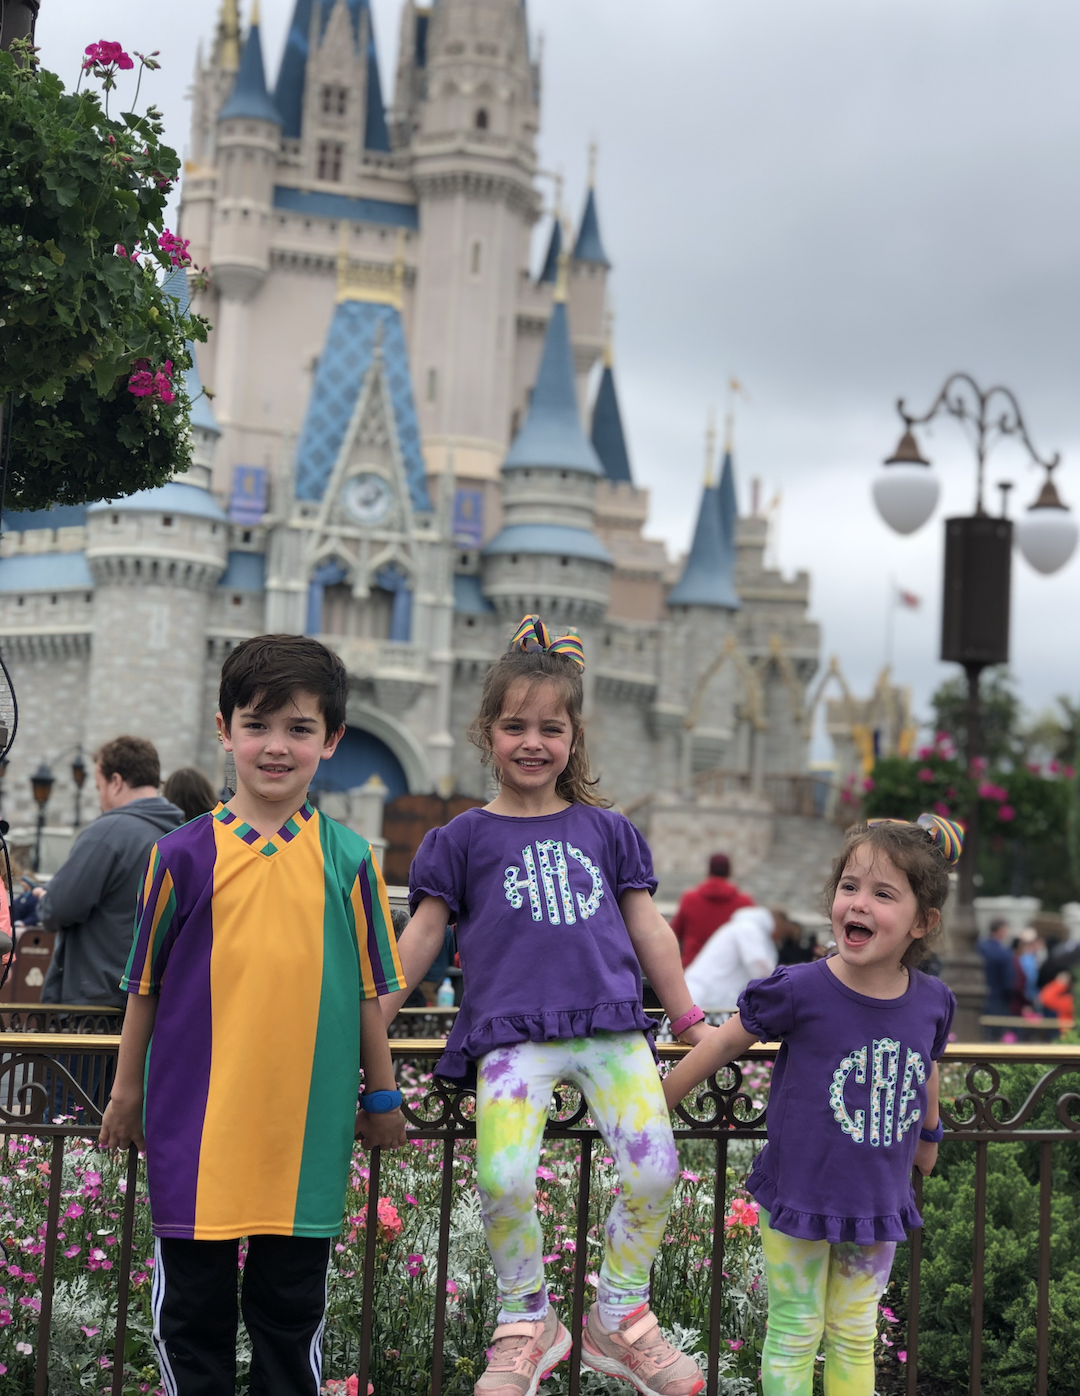 we are a Disney family in New Orleans